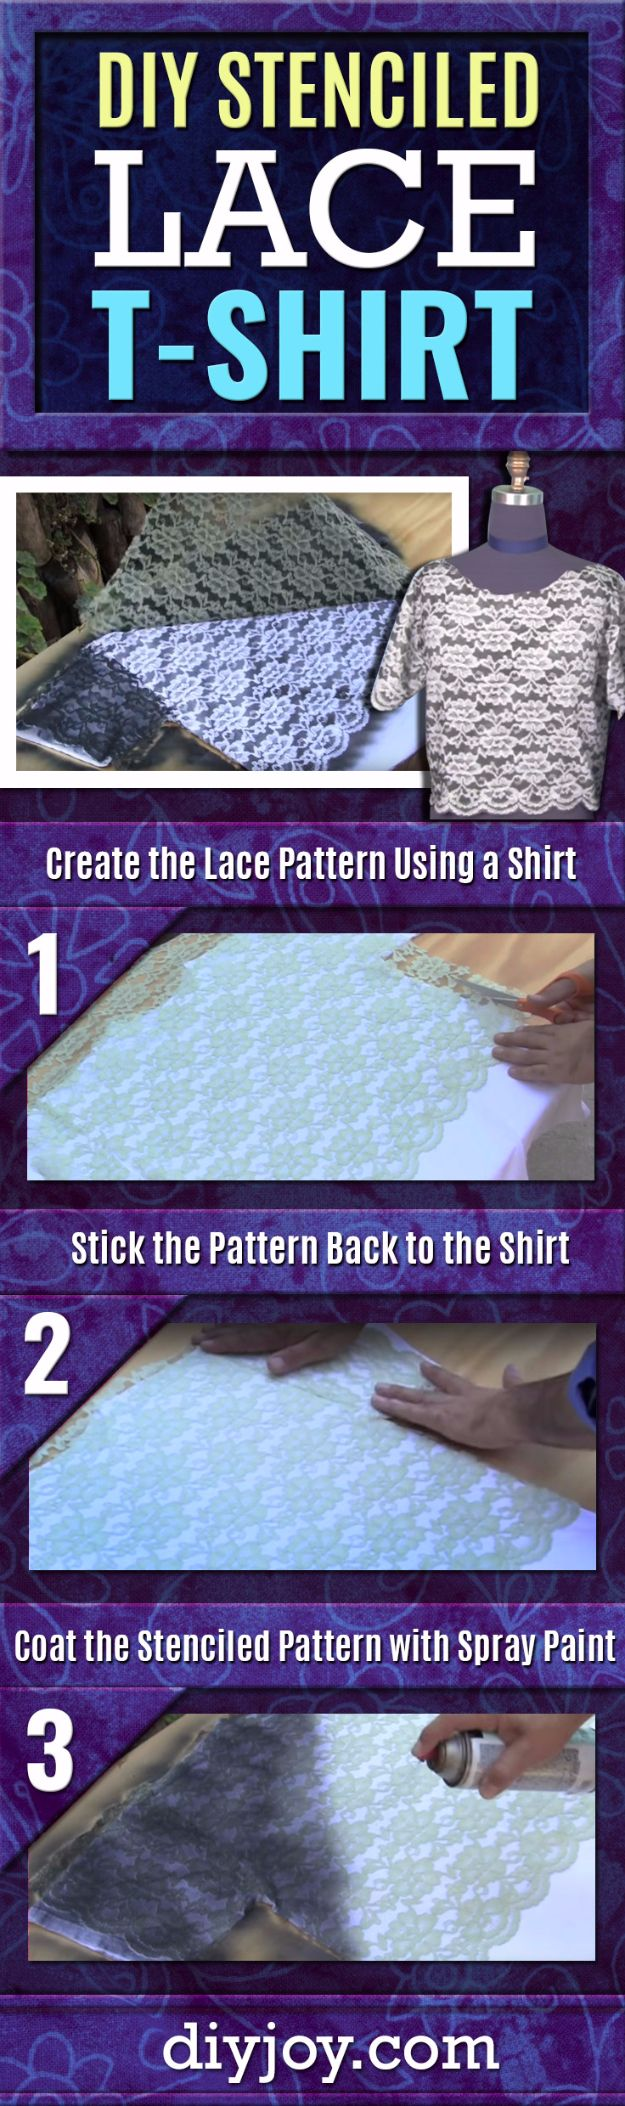 Spray Painting Tips and Tricks - DIY Stenciled Lace T-Shirt - Home Improvement Ideas and Tutorials for Spray Painting Furniture, House, Doors, Trim, Windows and Walls - Step by Step Tutorials and Best How To Instructions - DIY Projects and Crafts by DIY JOY #diyideas